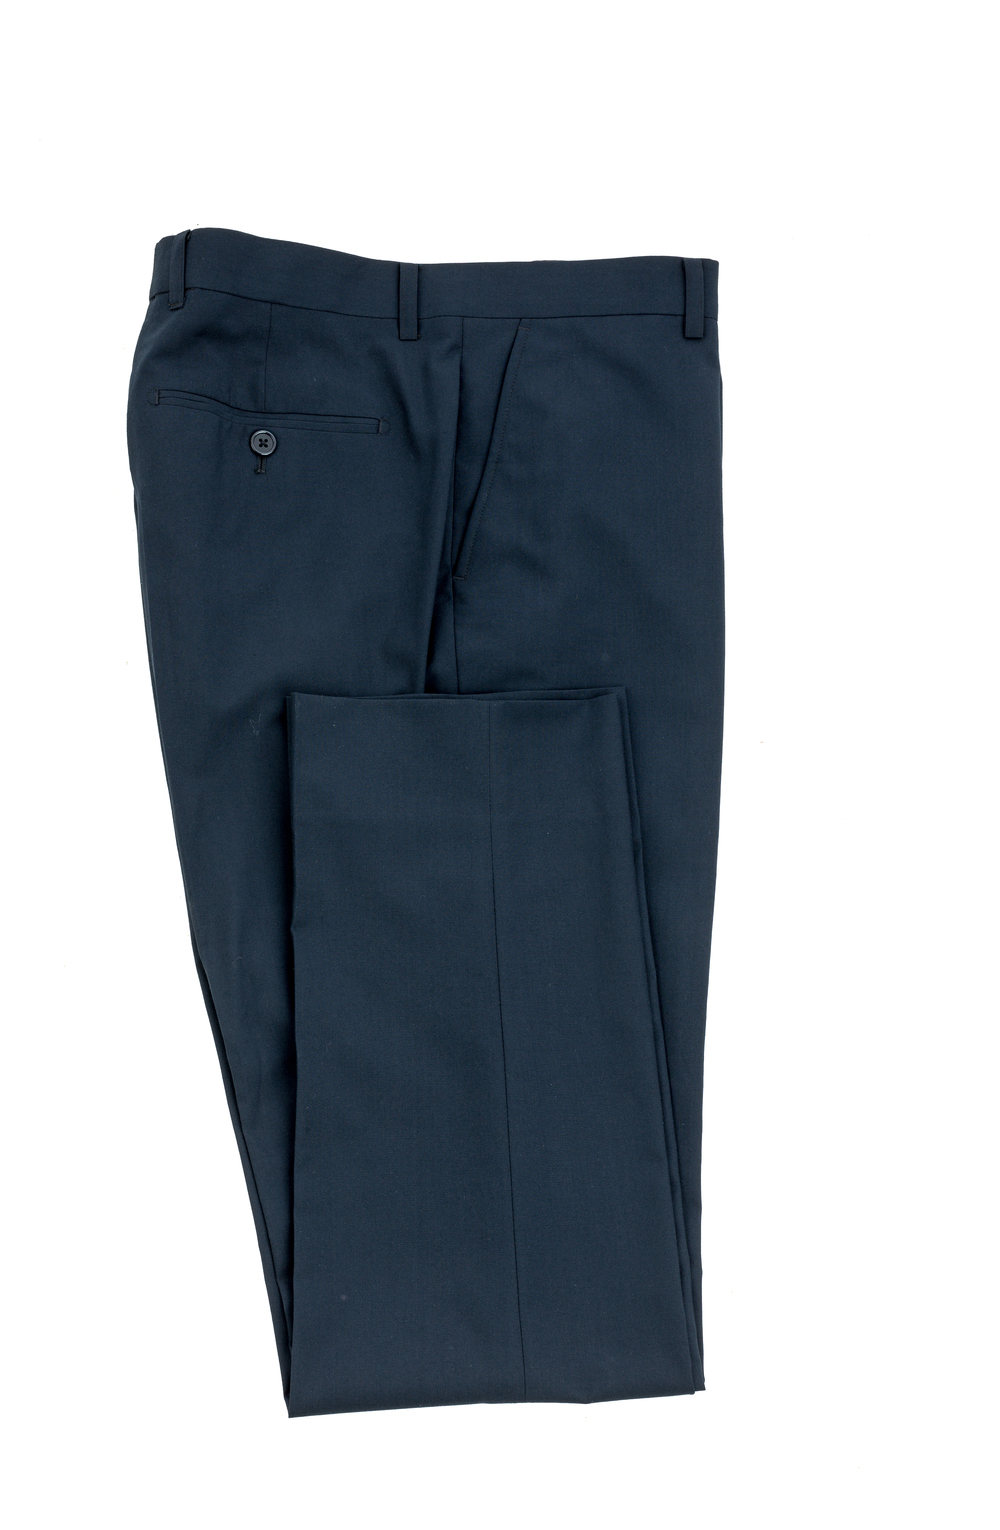 Deniro Navy Trouser